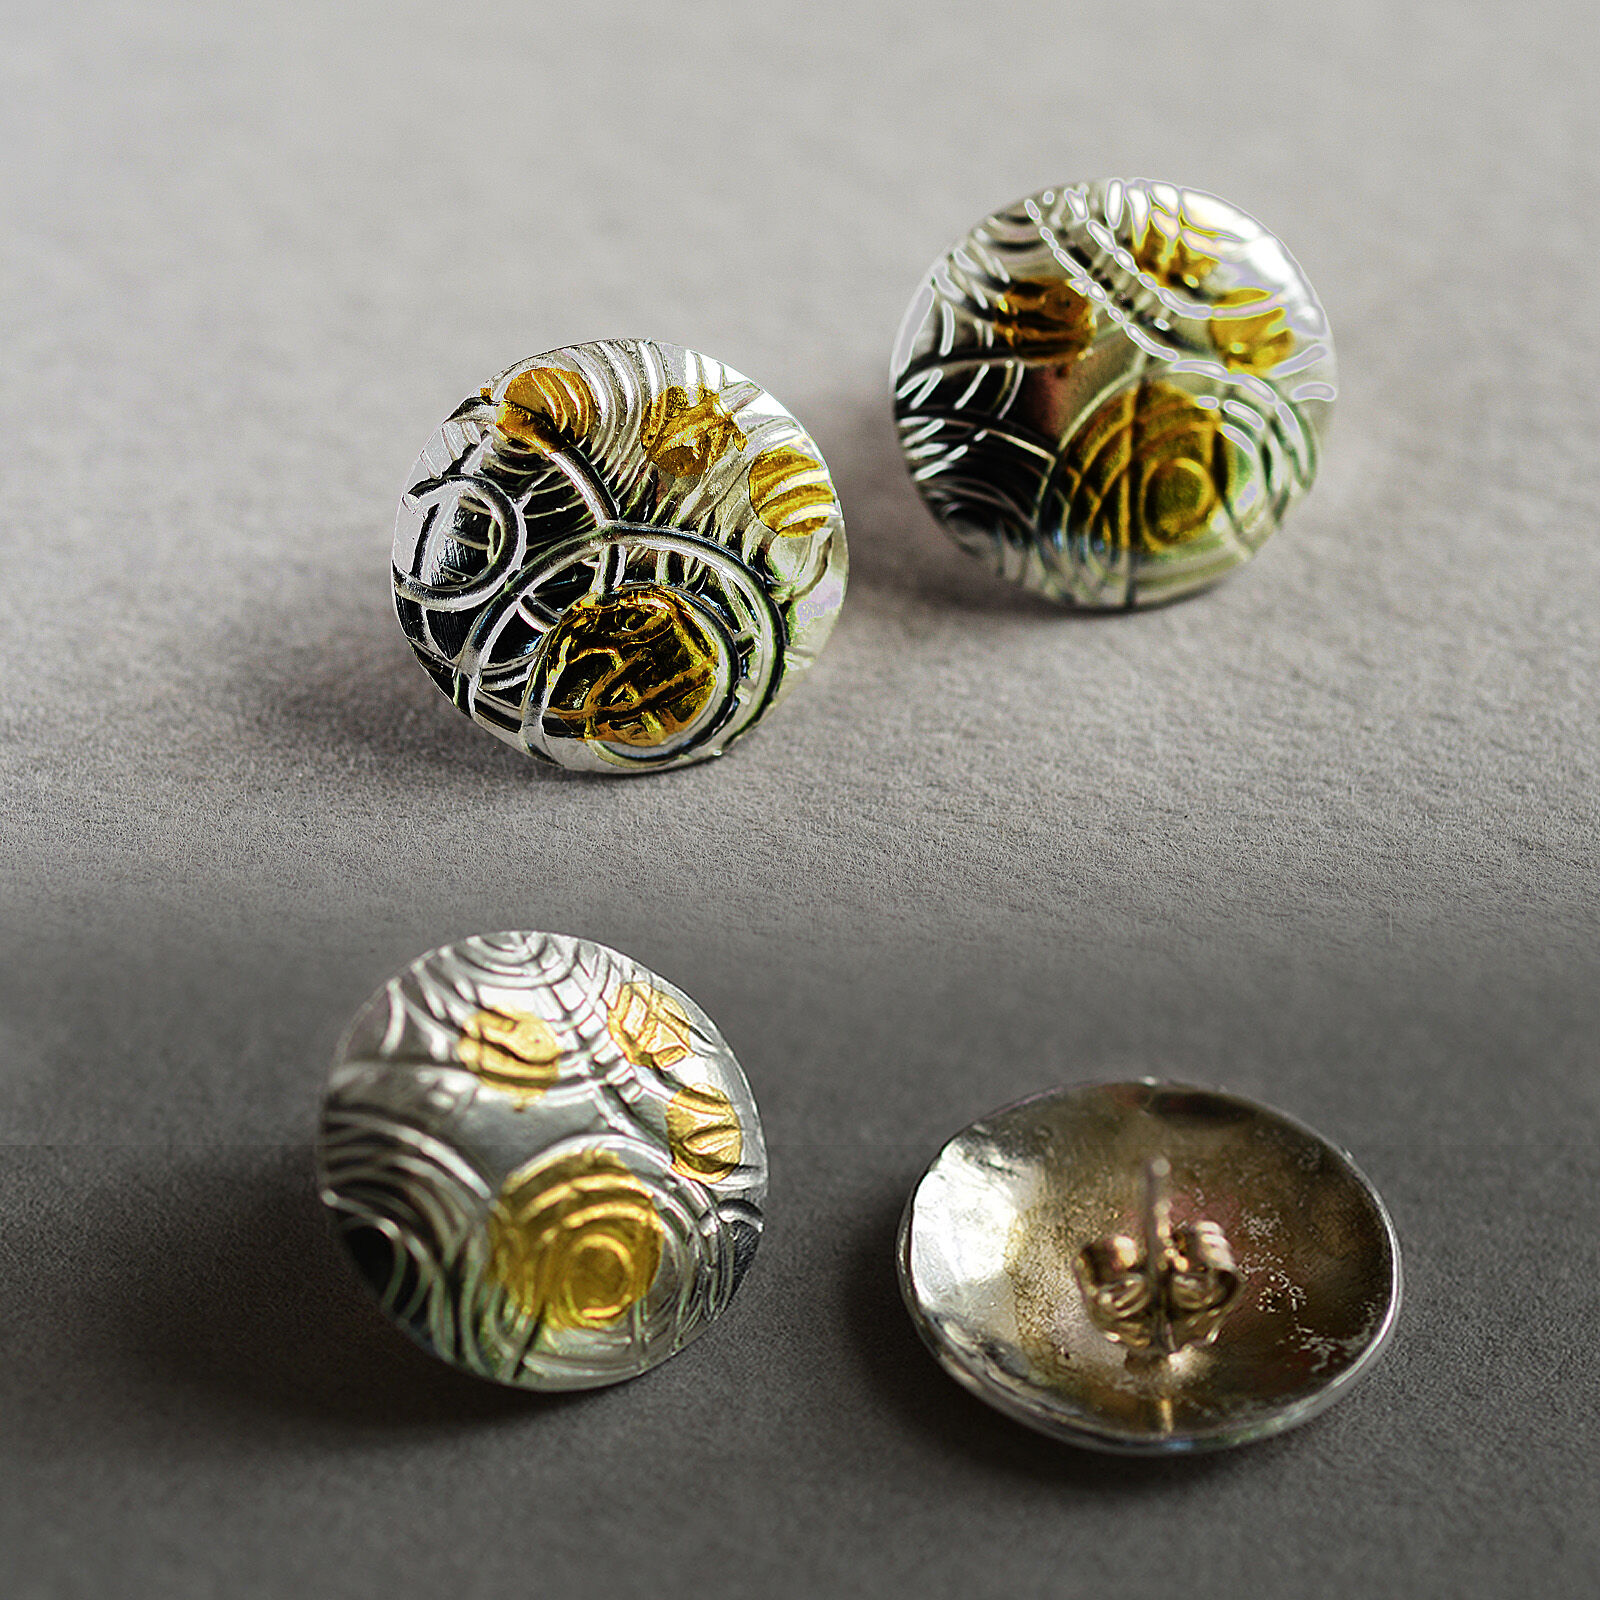 E20005 - Silver and gold domed and patterned earrngs